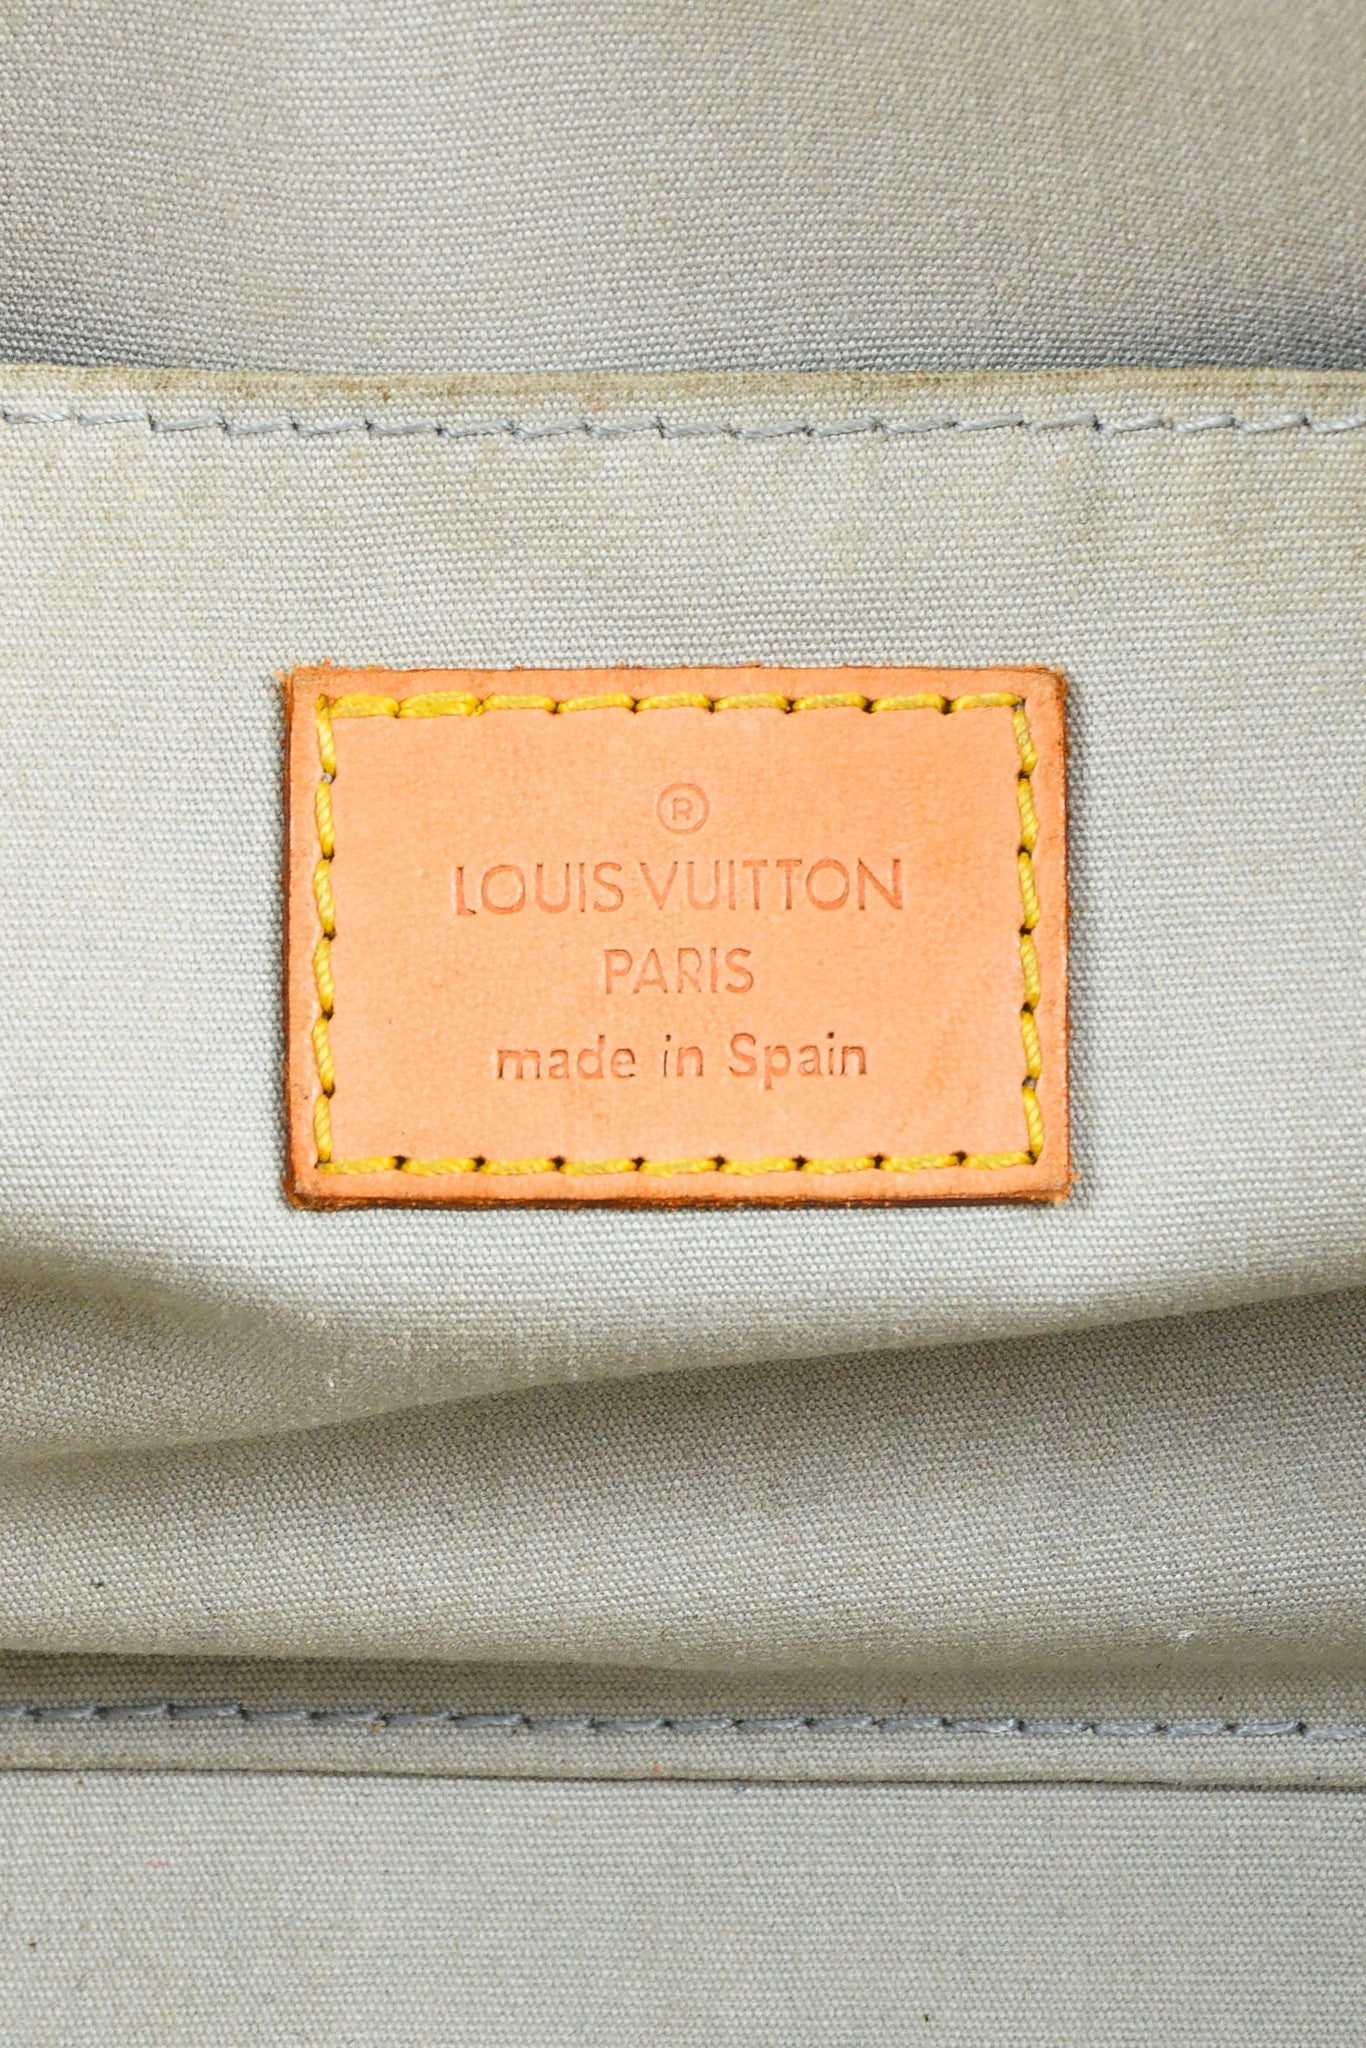 "Cream Louis Vuitton ""Perle"" Leather Monogram ""Roxbury Drive"" Bag Brand"